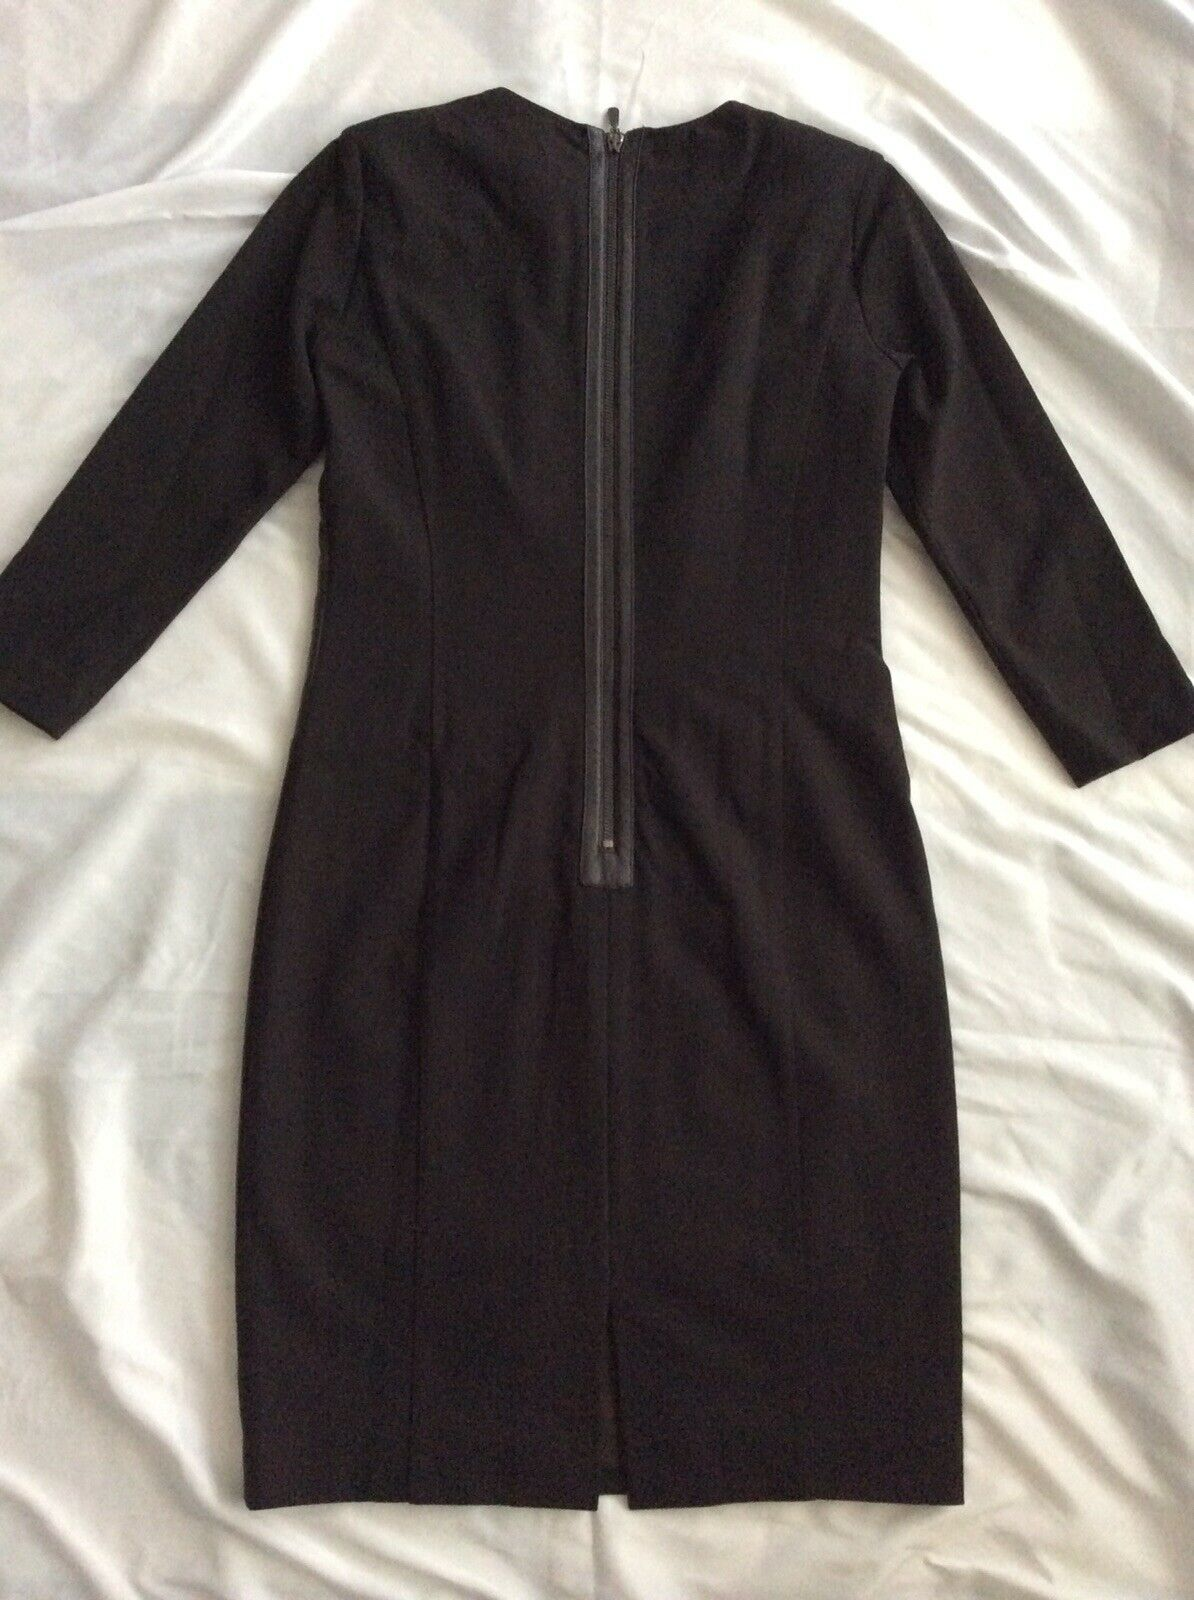 Worth Brown Dress size 6 full front zipper - image 2